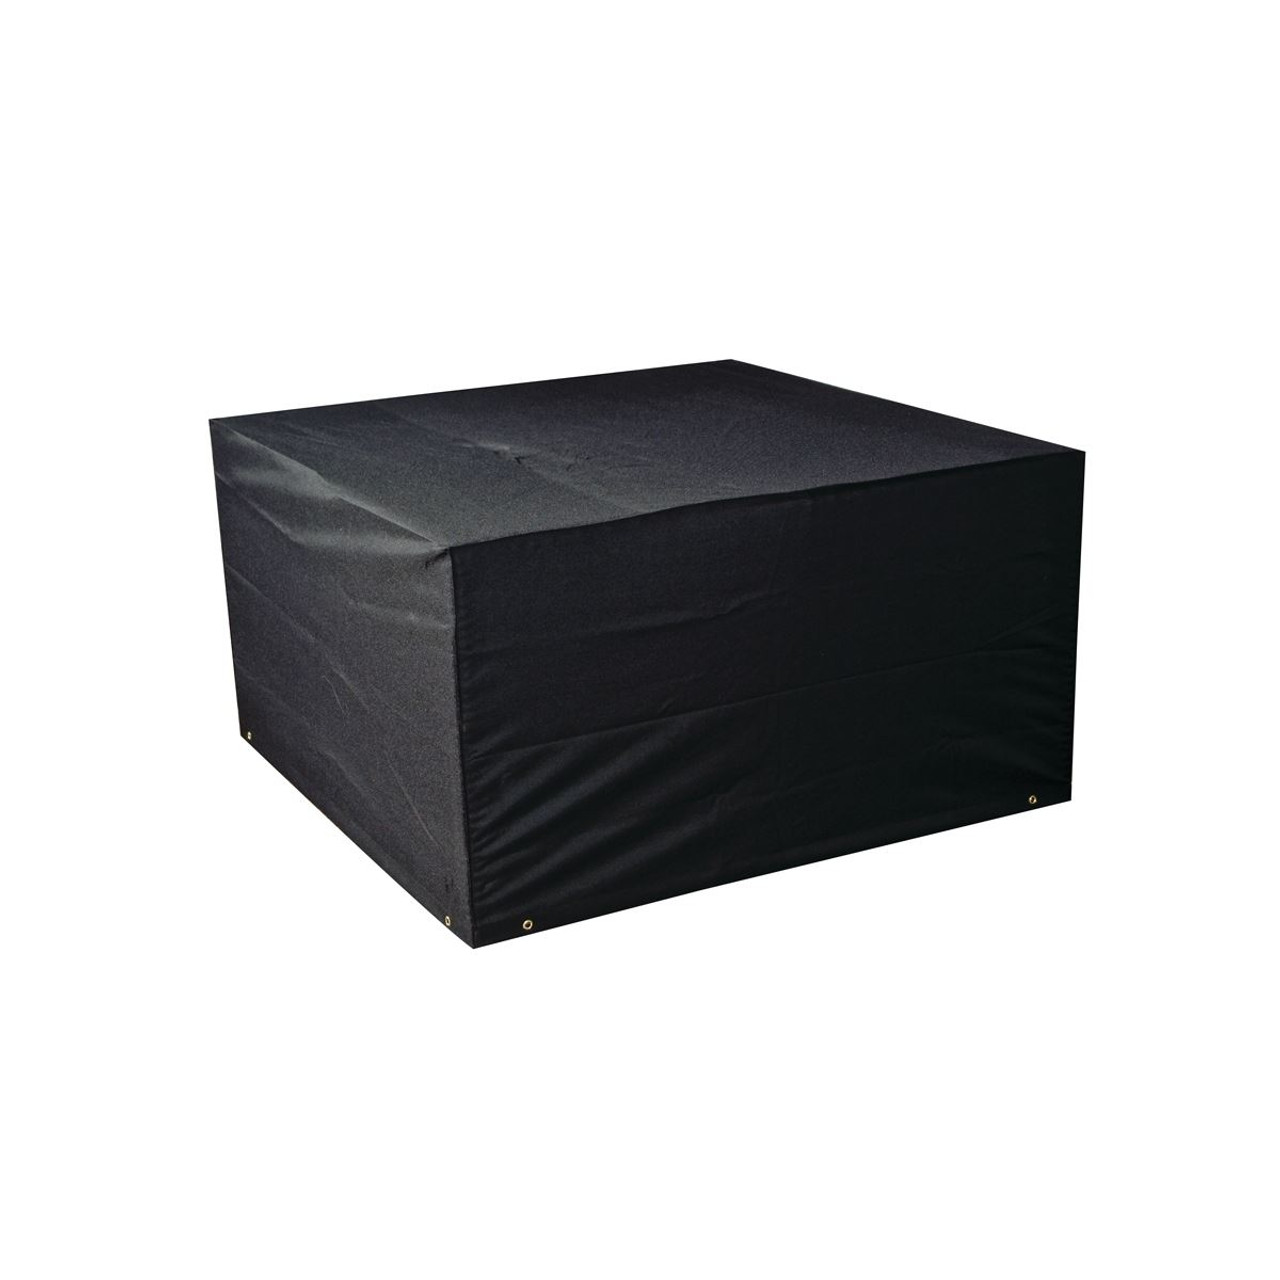 Bosmere Protector 6000 4 Seater Cube Set Cover Extra Large